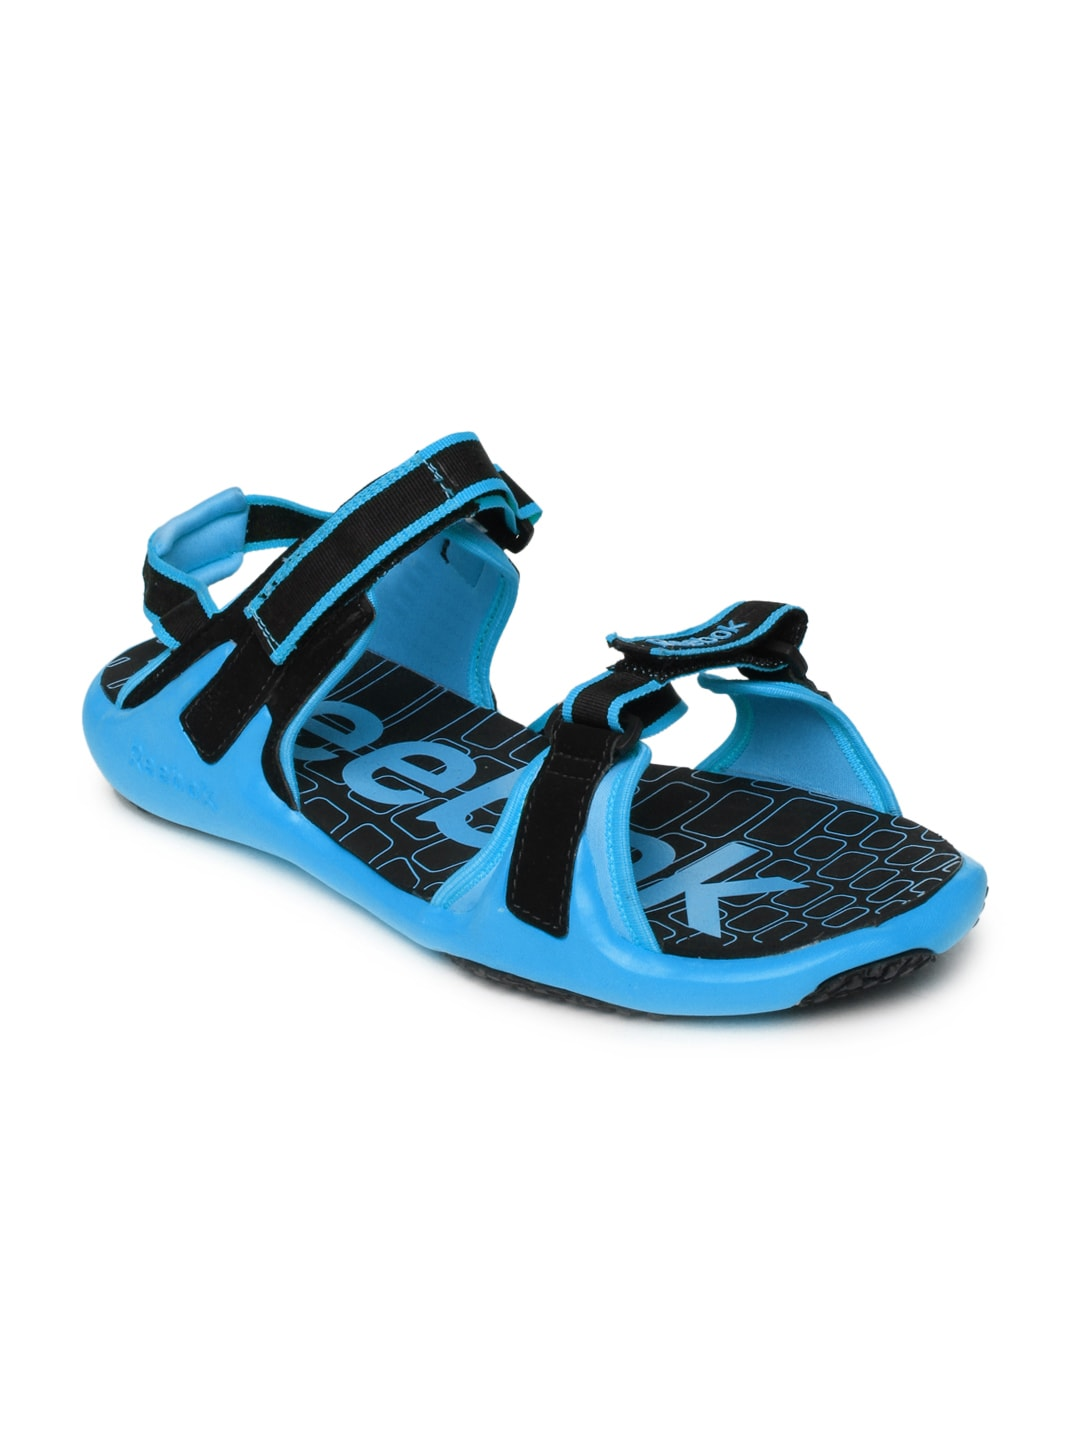 33d053a9 Reebok m40323 Men Black And Blue Adventure Grail Lp Sports Sandals- Price in  India